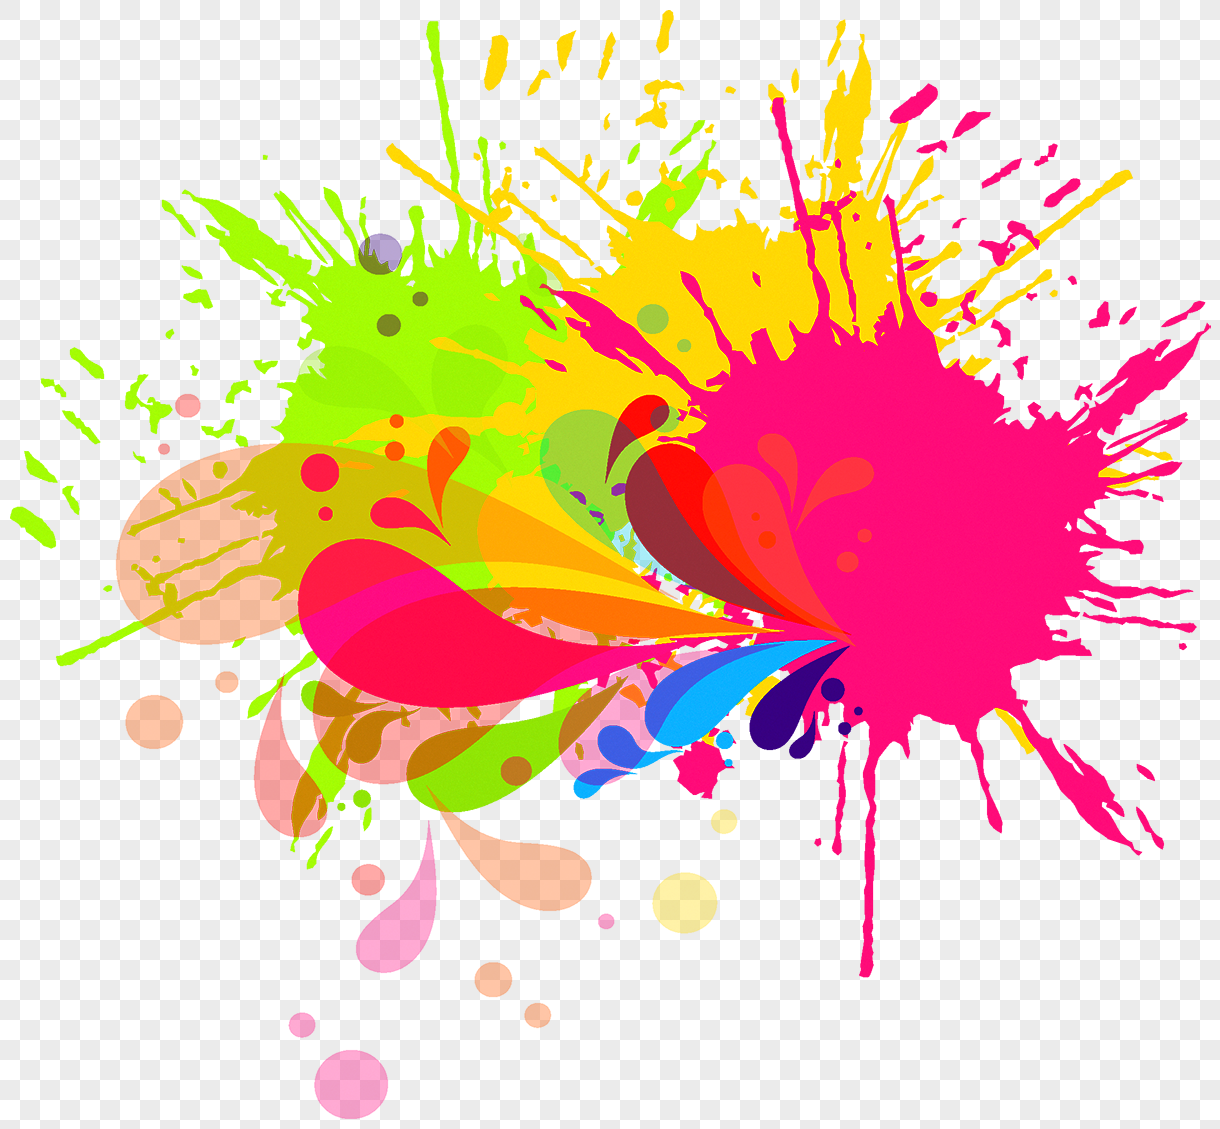 Paint Splash Png Image Picture Free Download 400651960